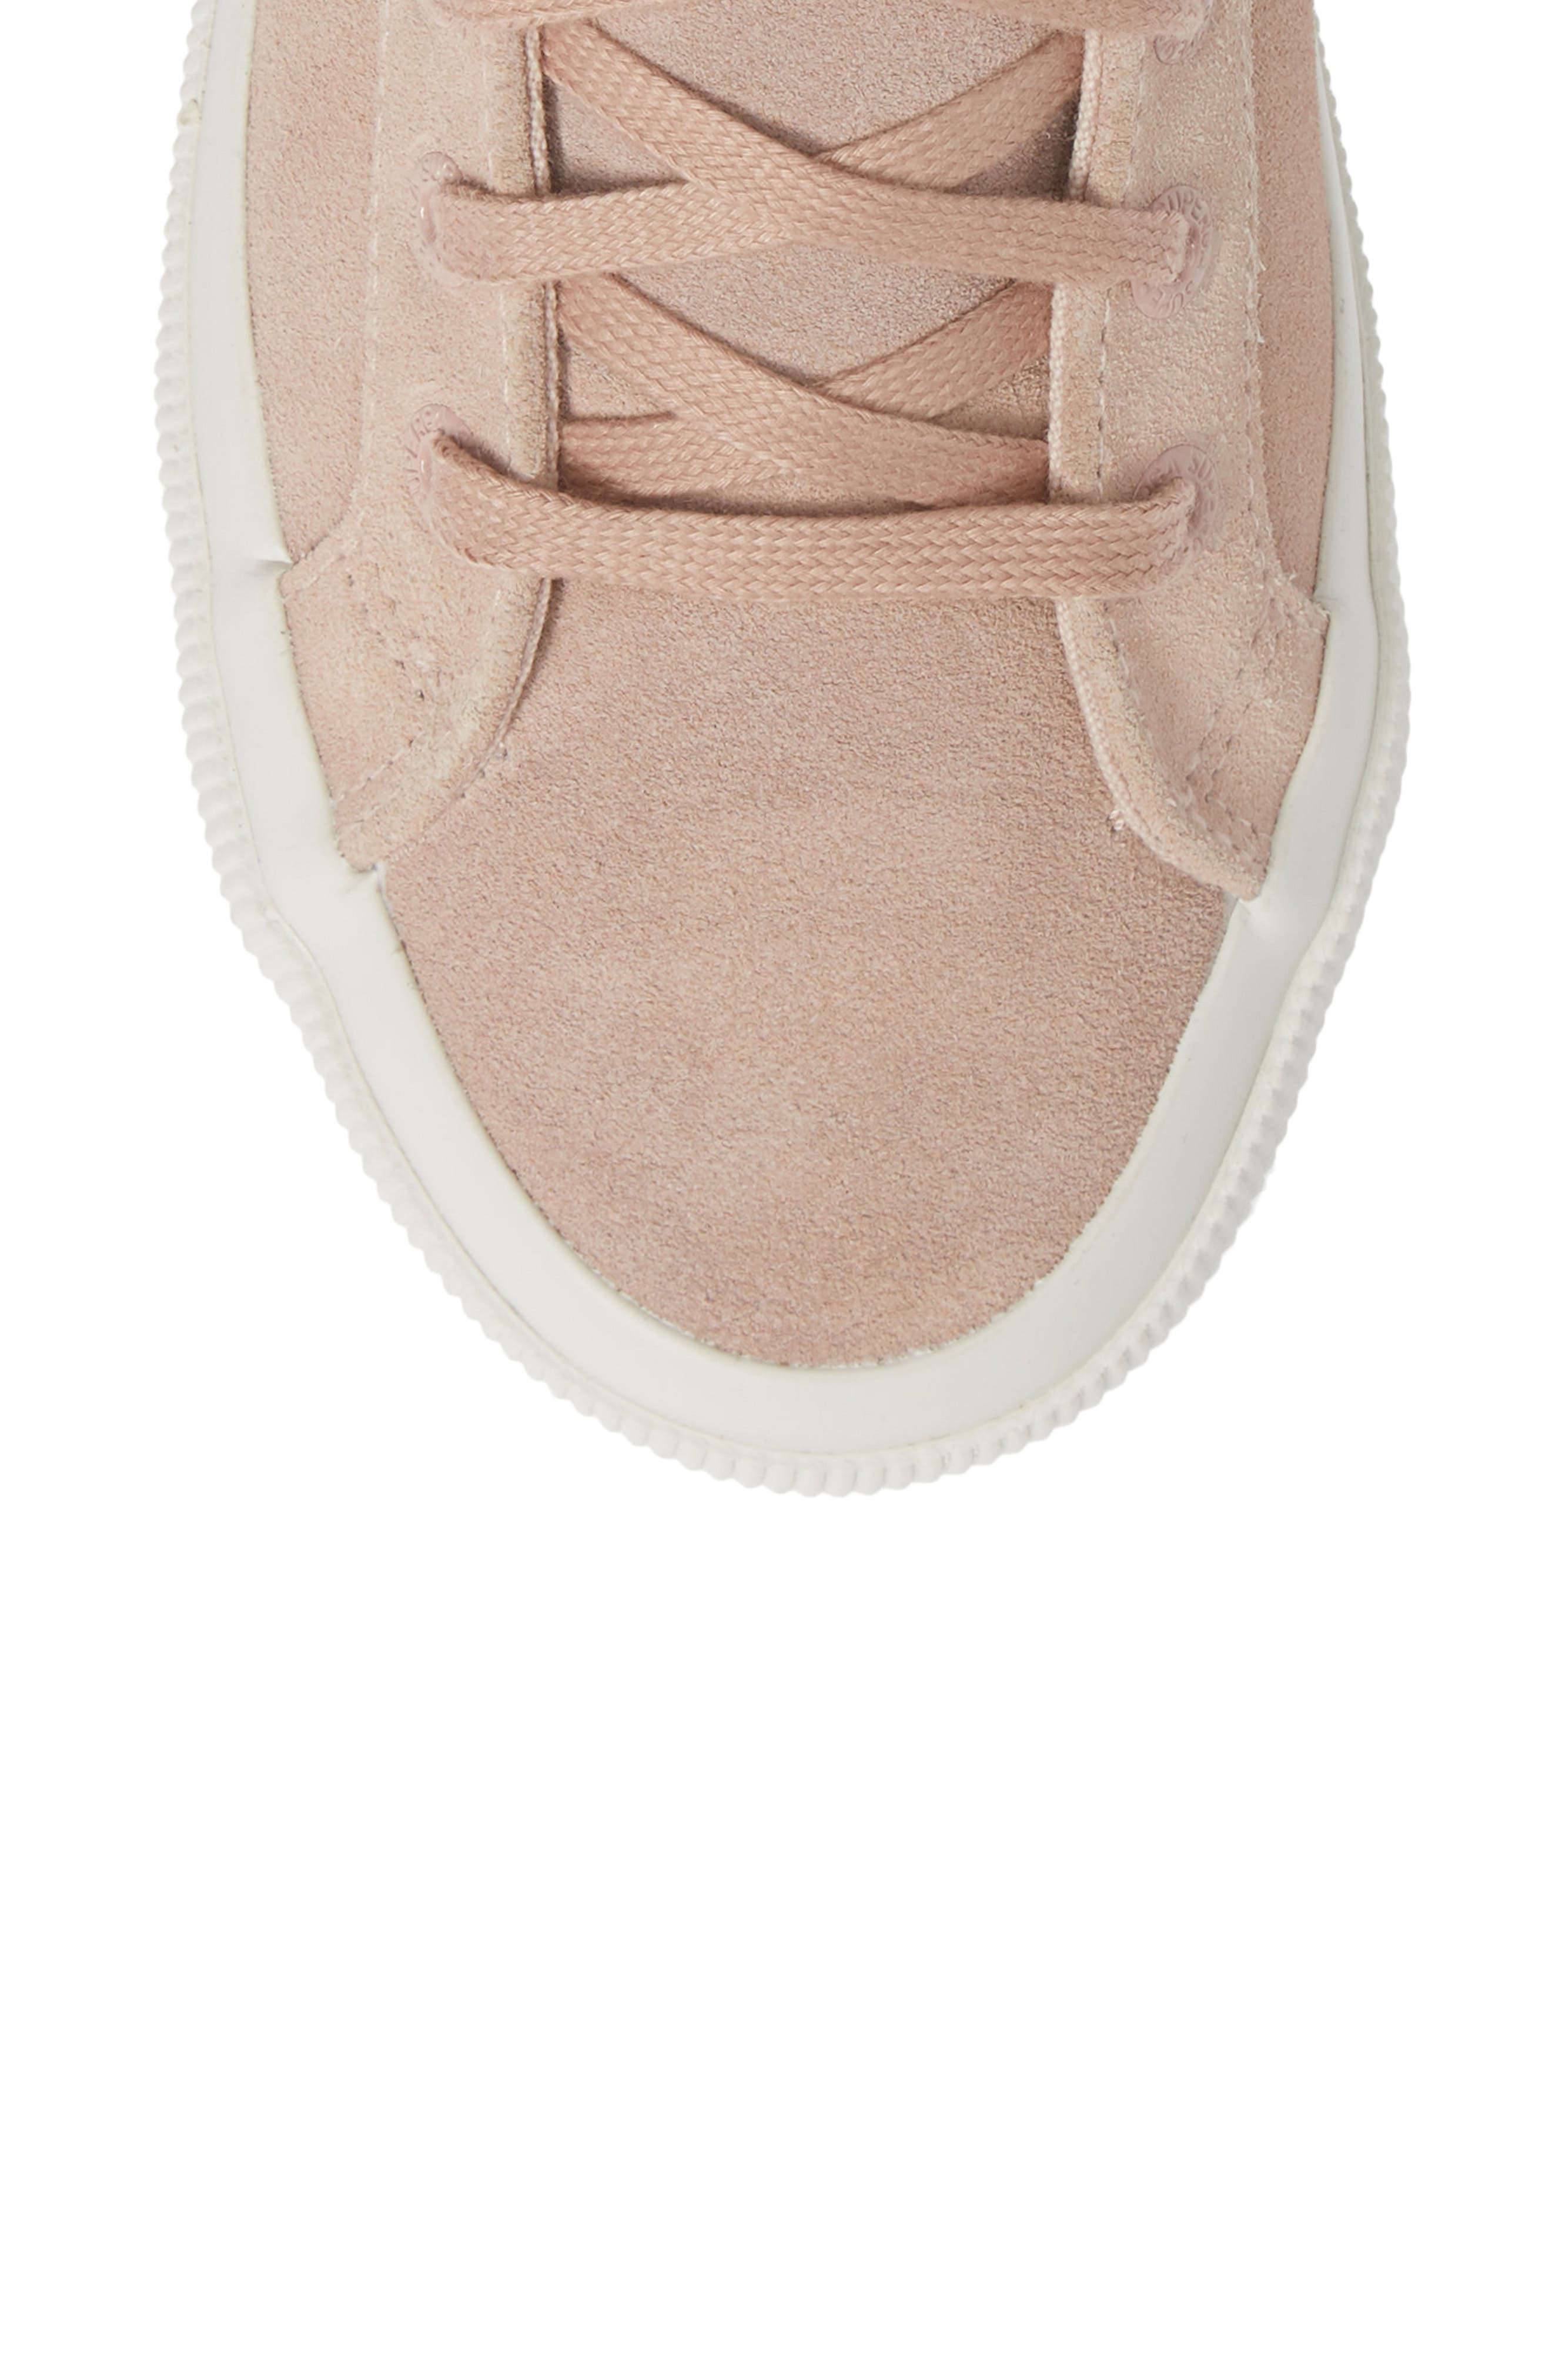 2795 High Top Sneaker,                             Alternate thumbnail 5, color,                             ROSE SUEDE